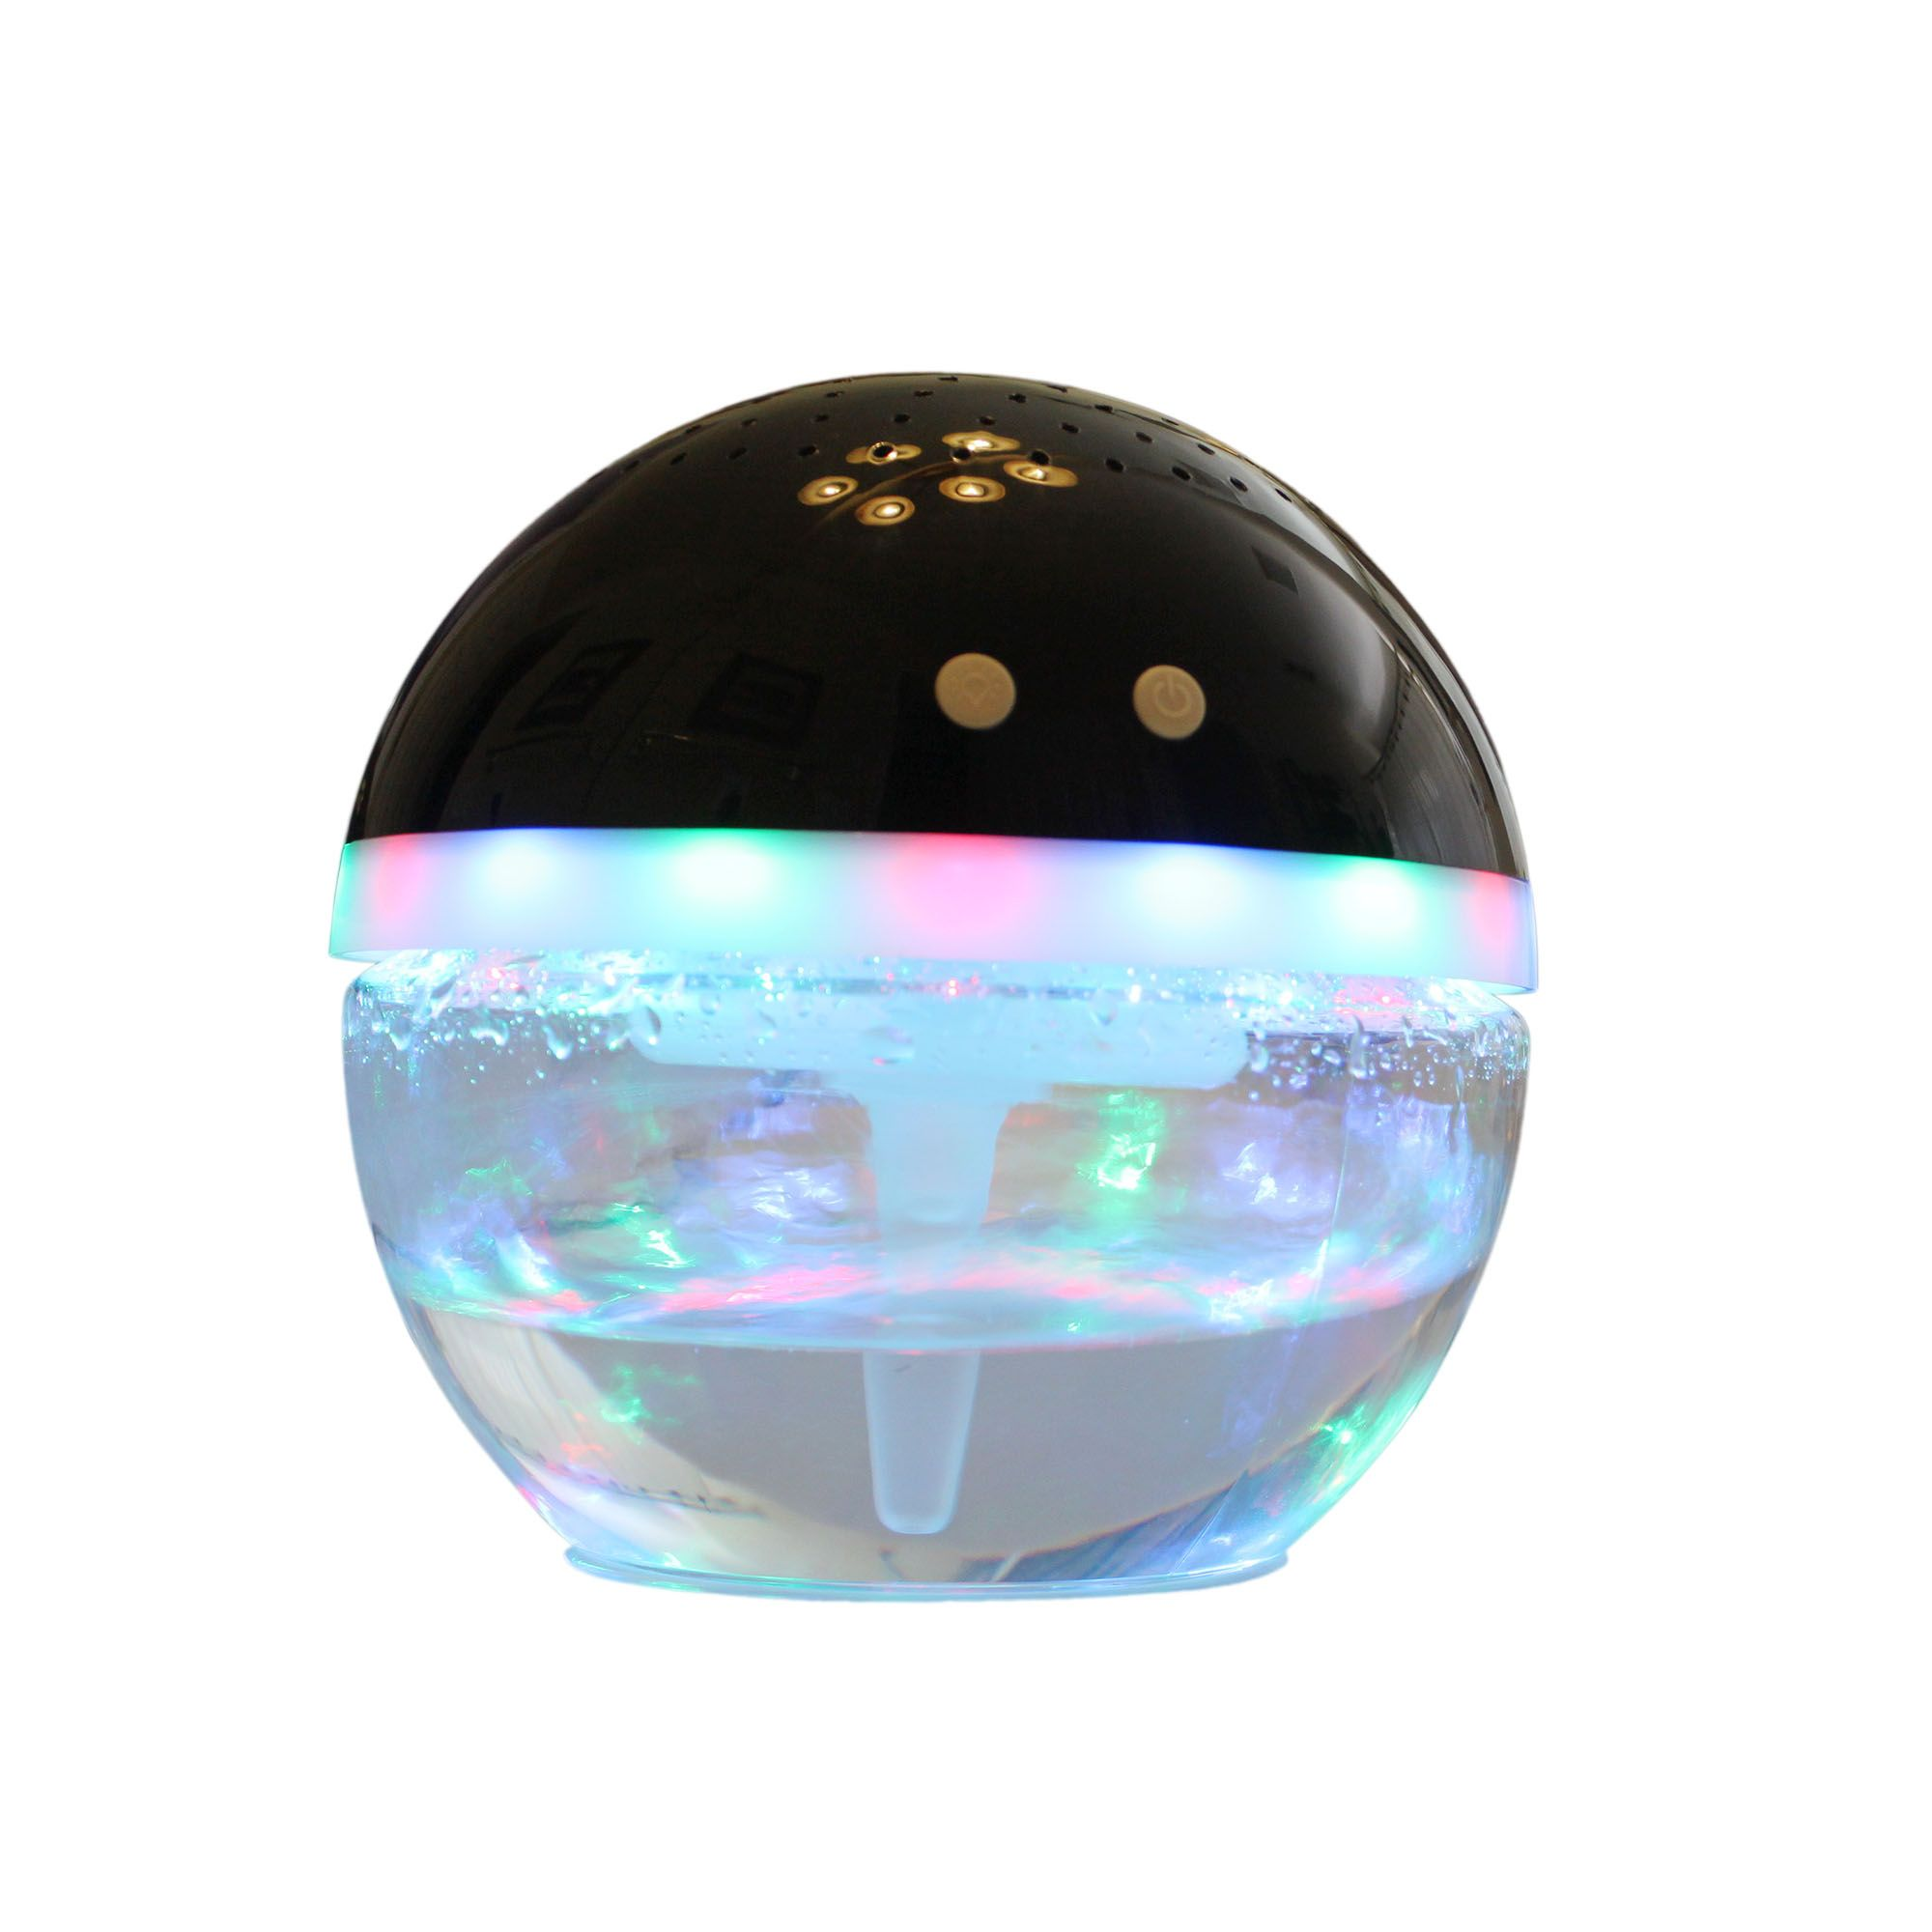 EcoGecko Magic Ball -Light Up Air Washer & Revitalizer, A...